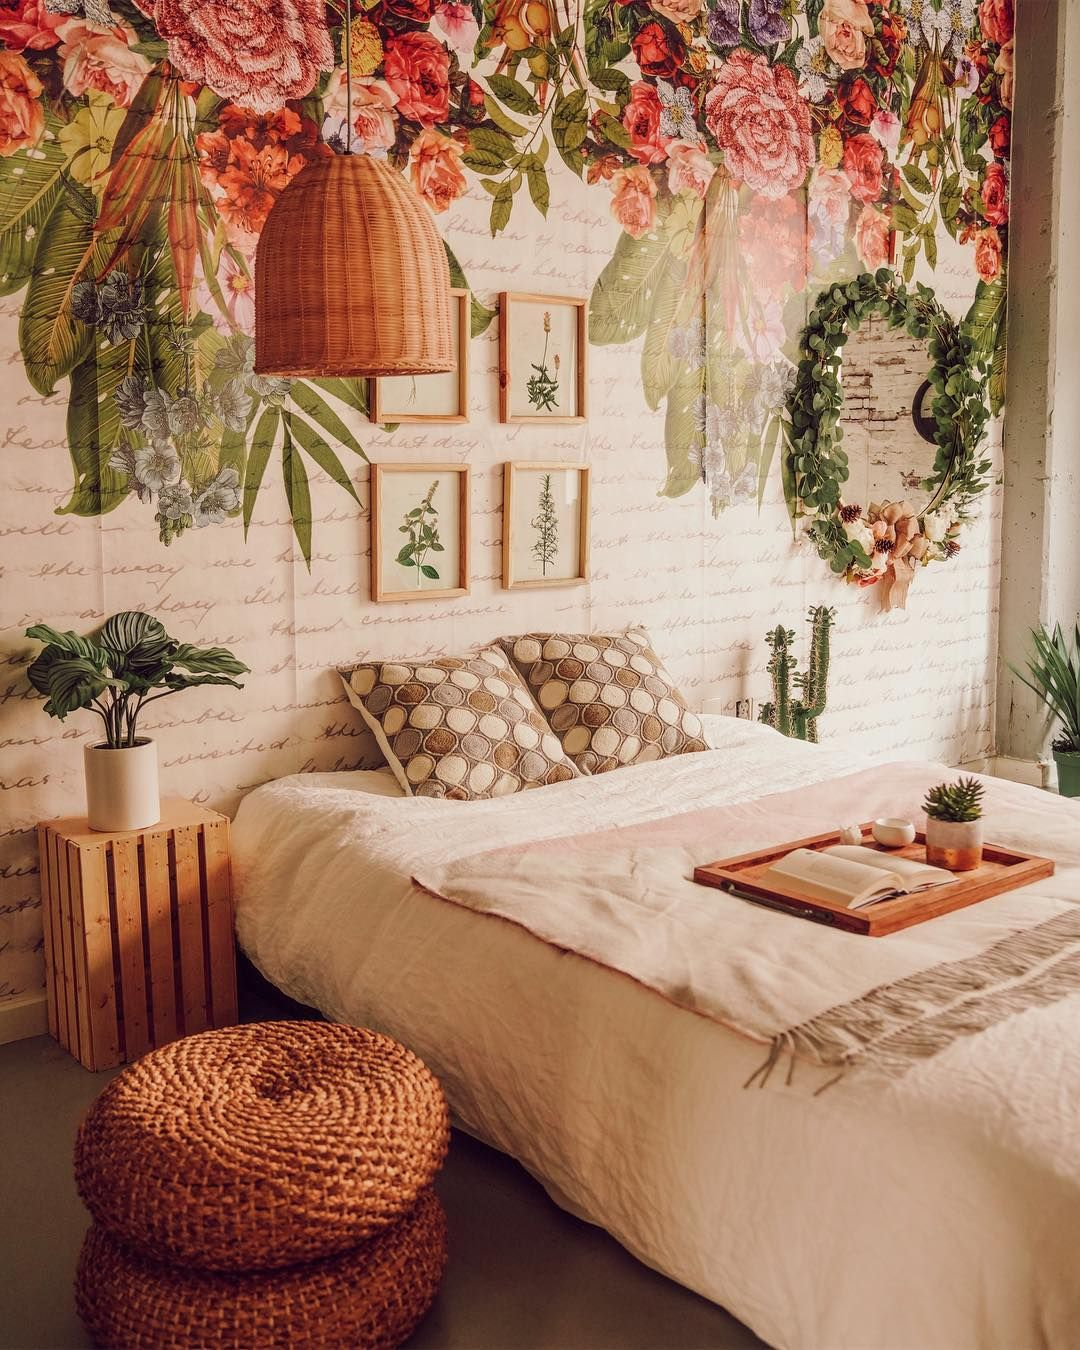 Anh Luu On Instagram Giveaway Closed Congratulations To Kaylalalaf You Are The Winner Of My Giveaway With Bohemian Bedroom Decor Bedroom Decor Room Decor